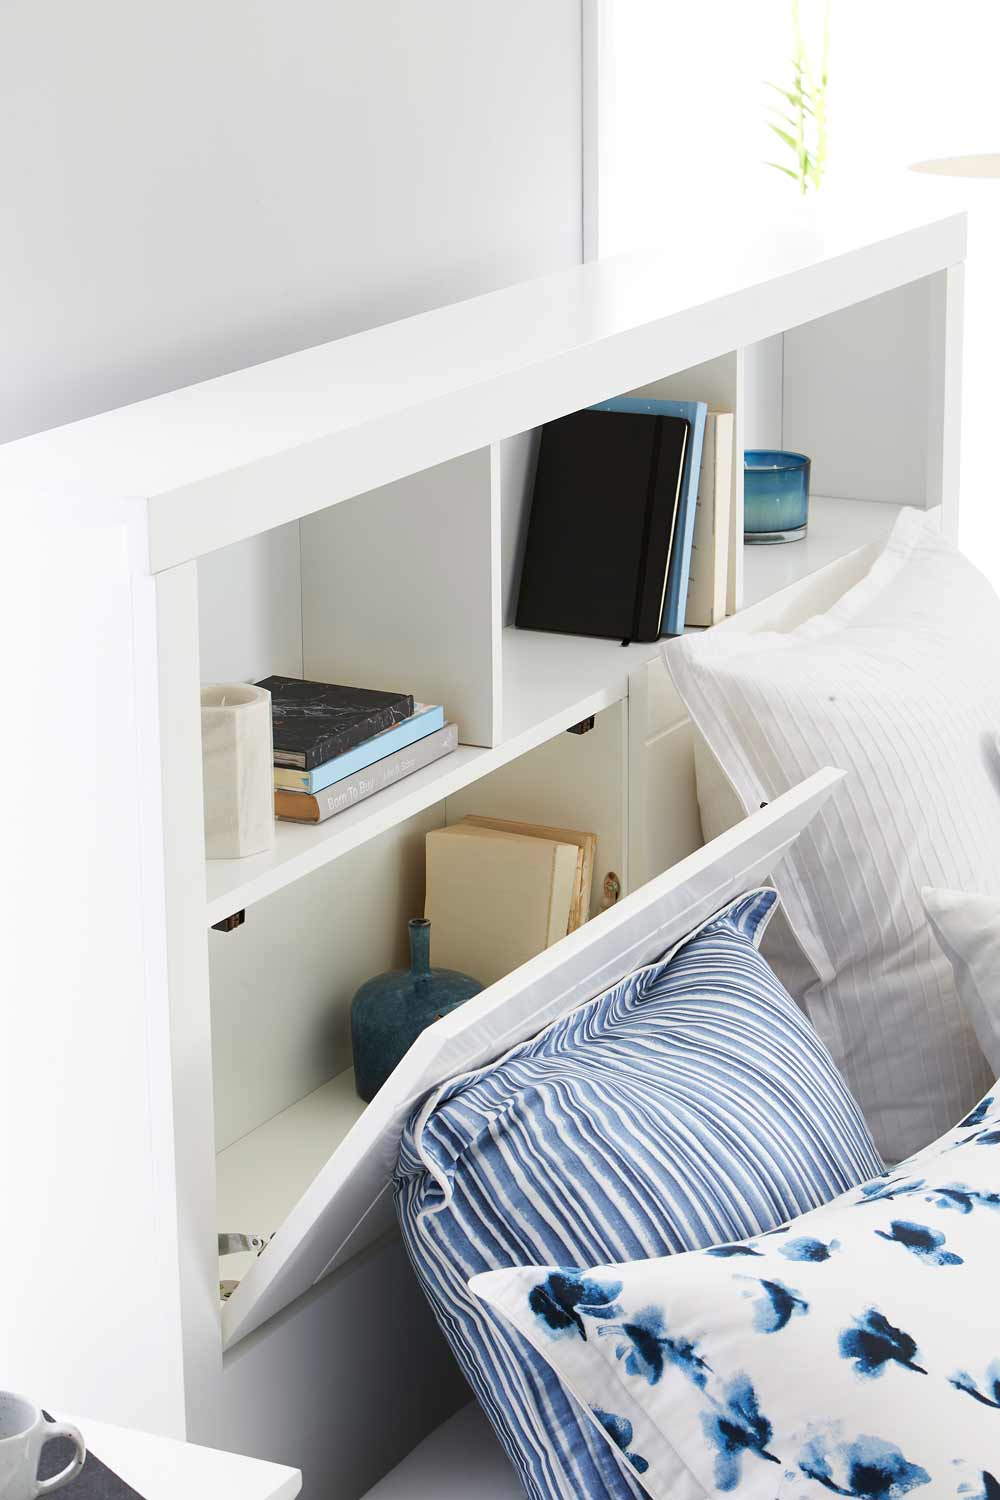 Bookend Bed Frame W/Bedhead Storage Matte White & Olsen Bookend Bed Frame W/Bedhead Storage Matte White | Bedroom ...